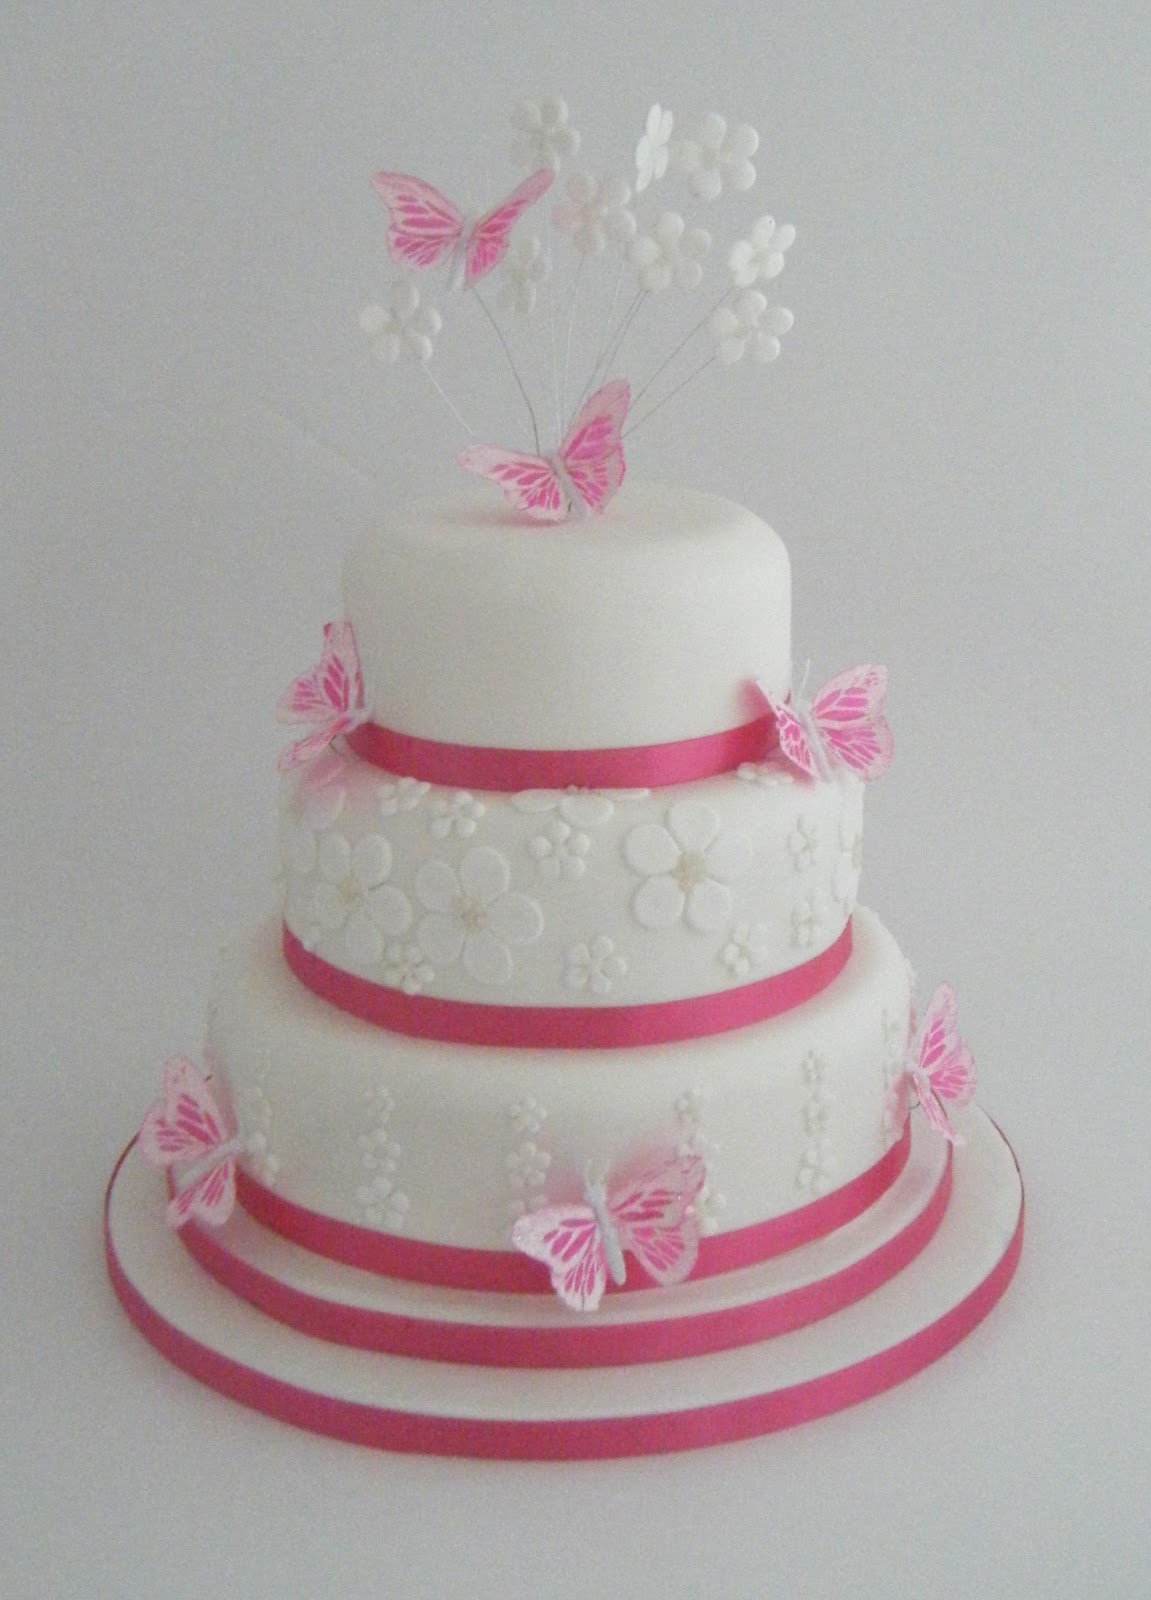 Wedding Cakes Pictures: Butterfly Wedding Cake Decorations Pictures